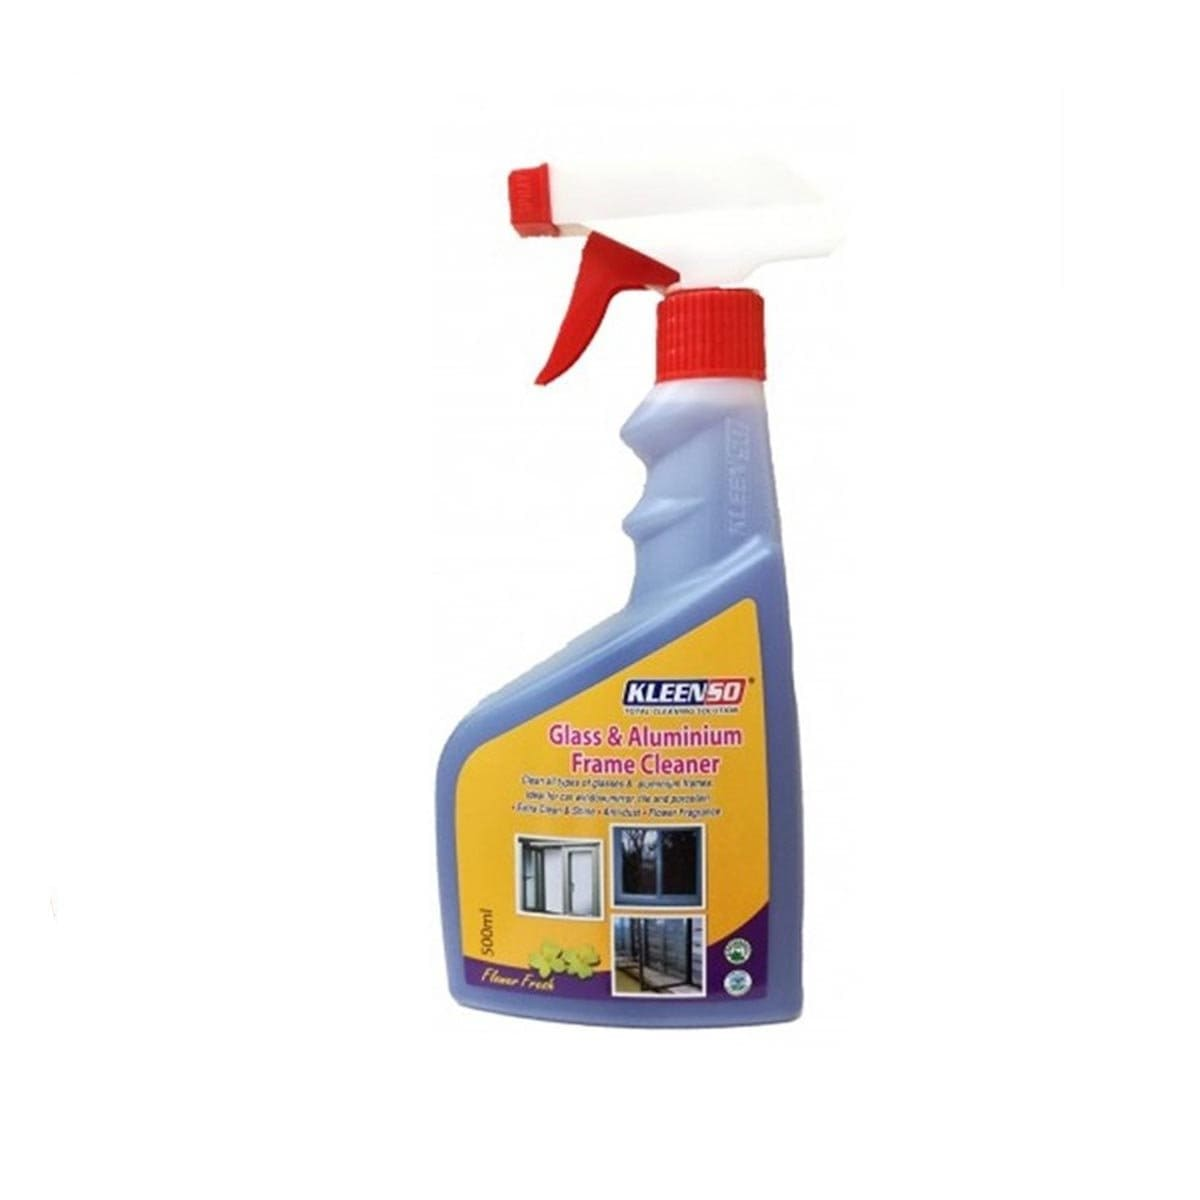 Kleenso Anti-Dust Glass Cleaner KHC813